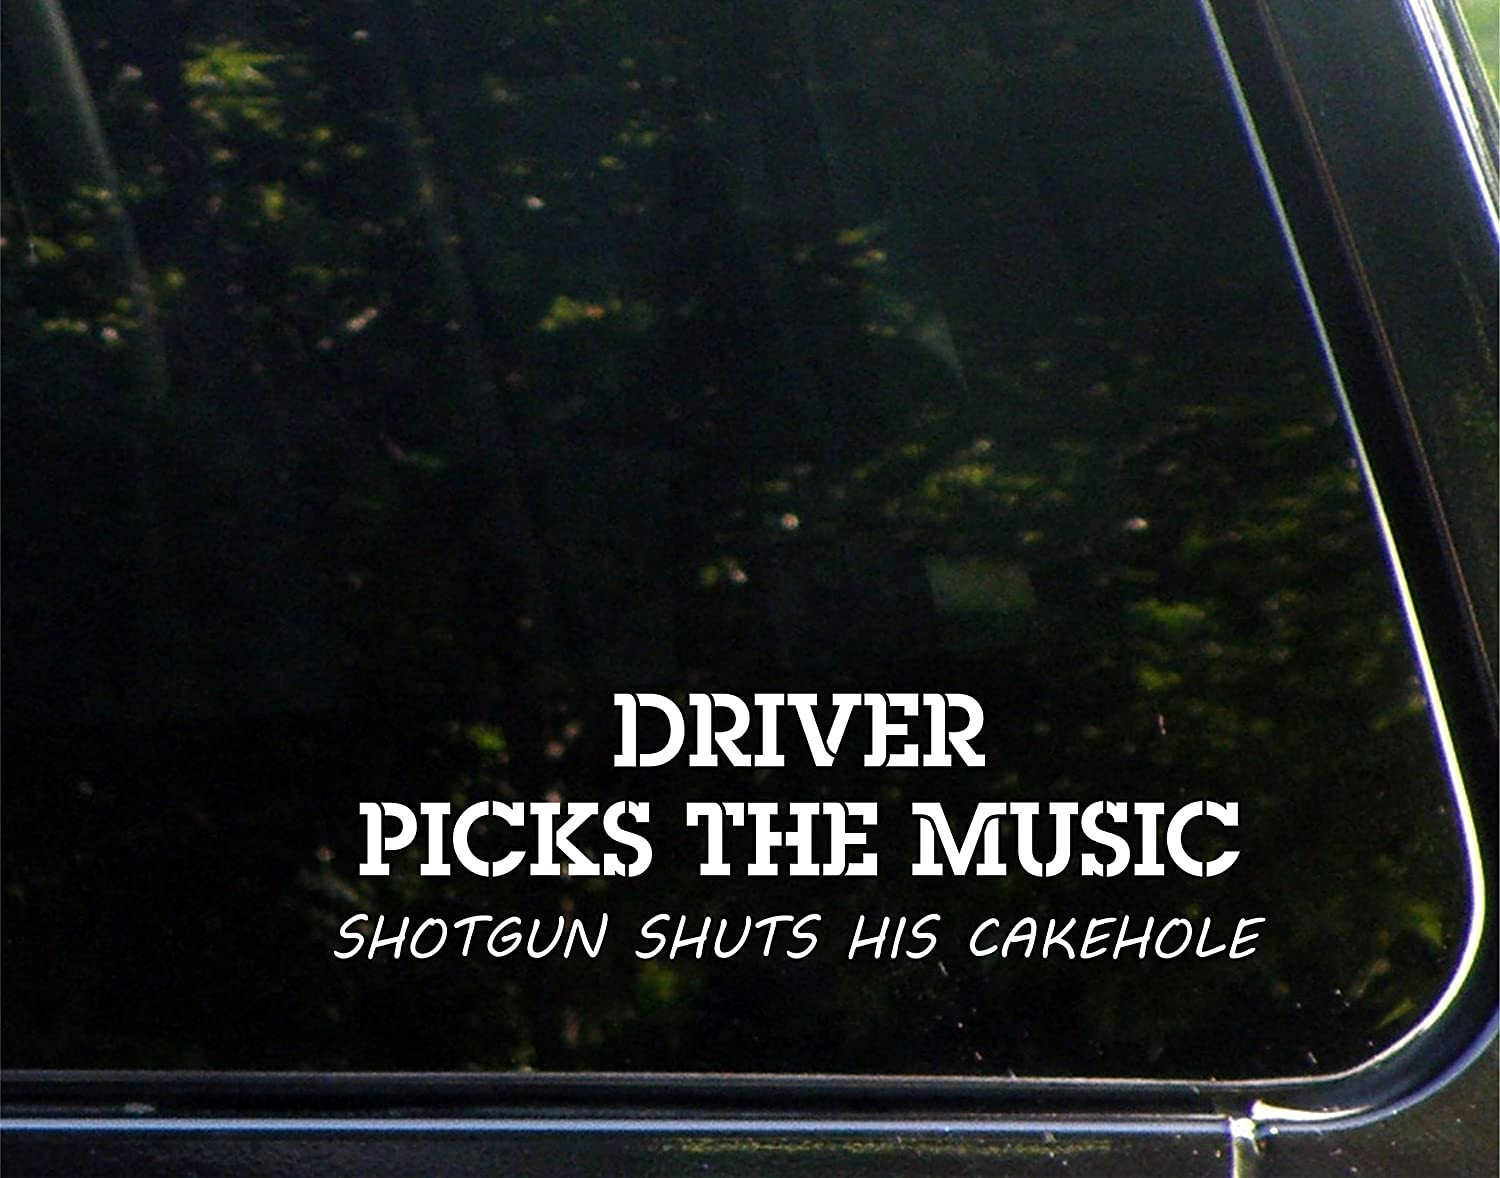 Driver Picks The Music Shotgun Shuts his Cakehole - 9' x 3-1/2' - Vinyl Die Cut Decal Bumper Sticker For Windows, Cars, Trucks, Laptops, Etc. Sign Depot SD1-8150